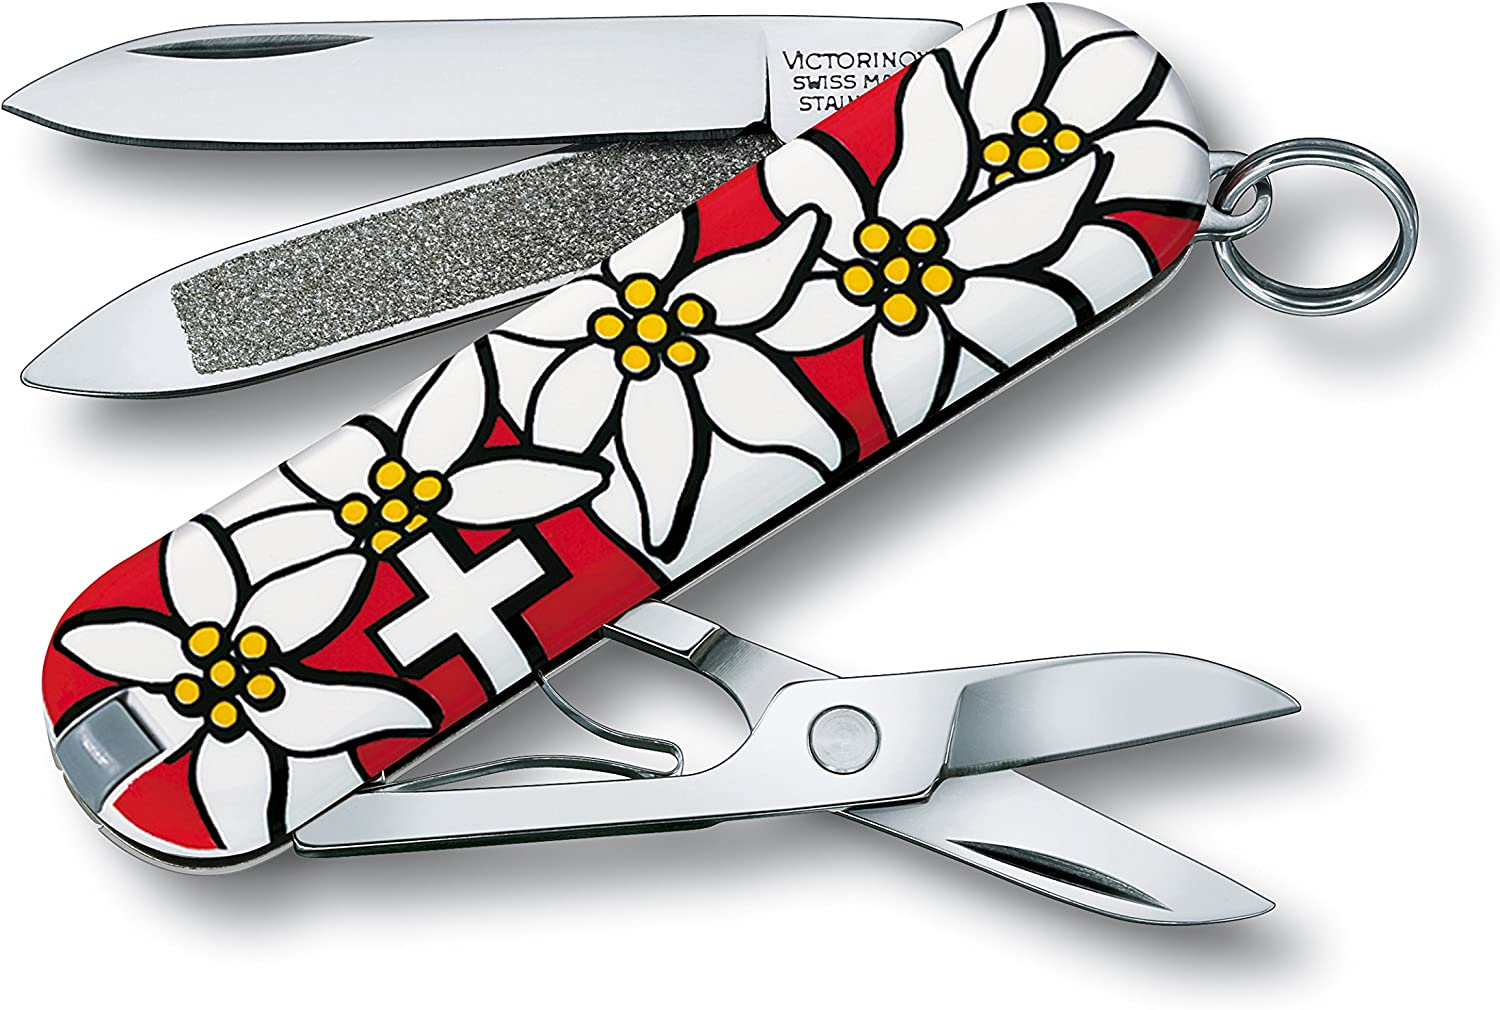 7. Victorinox Swiss Army Classic Pocket Knife